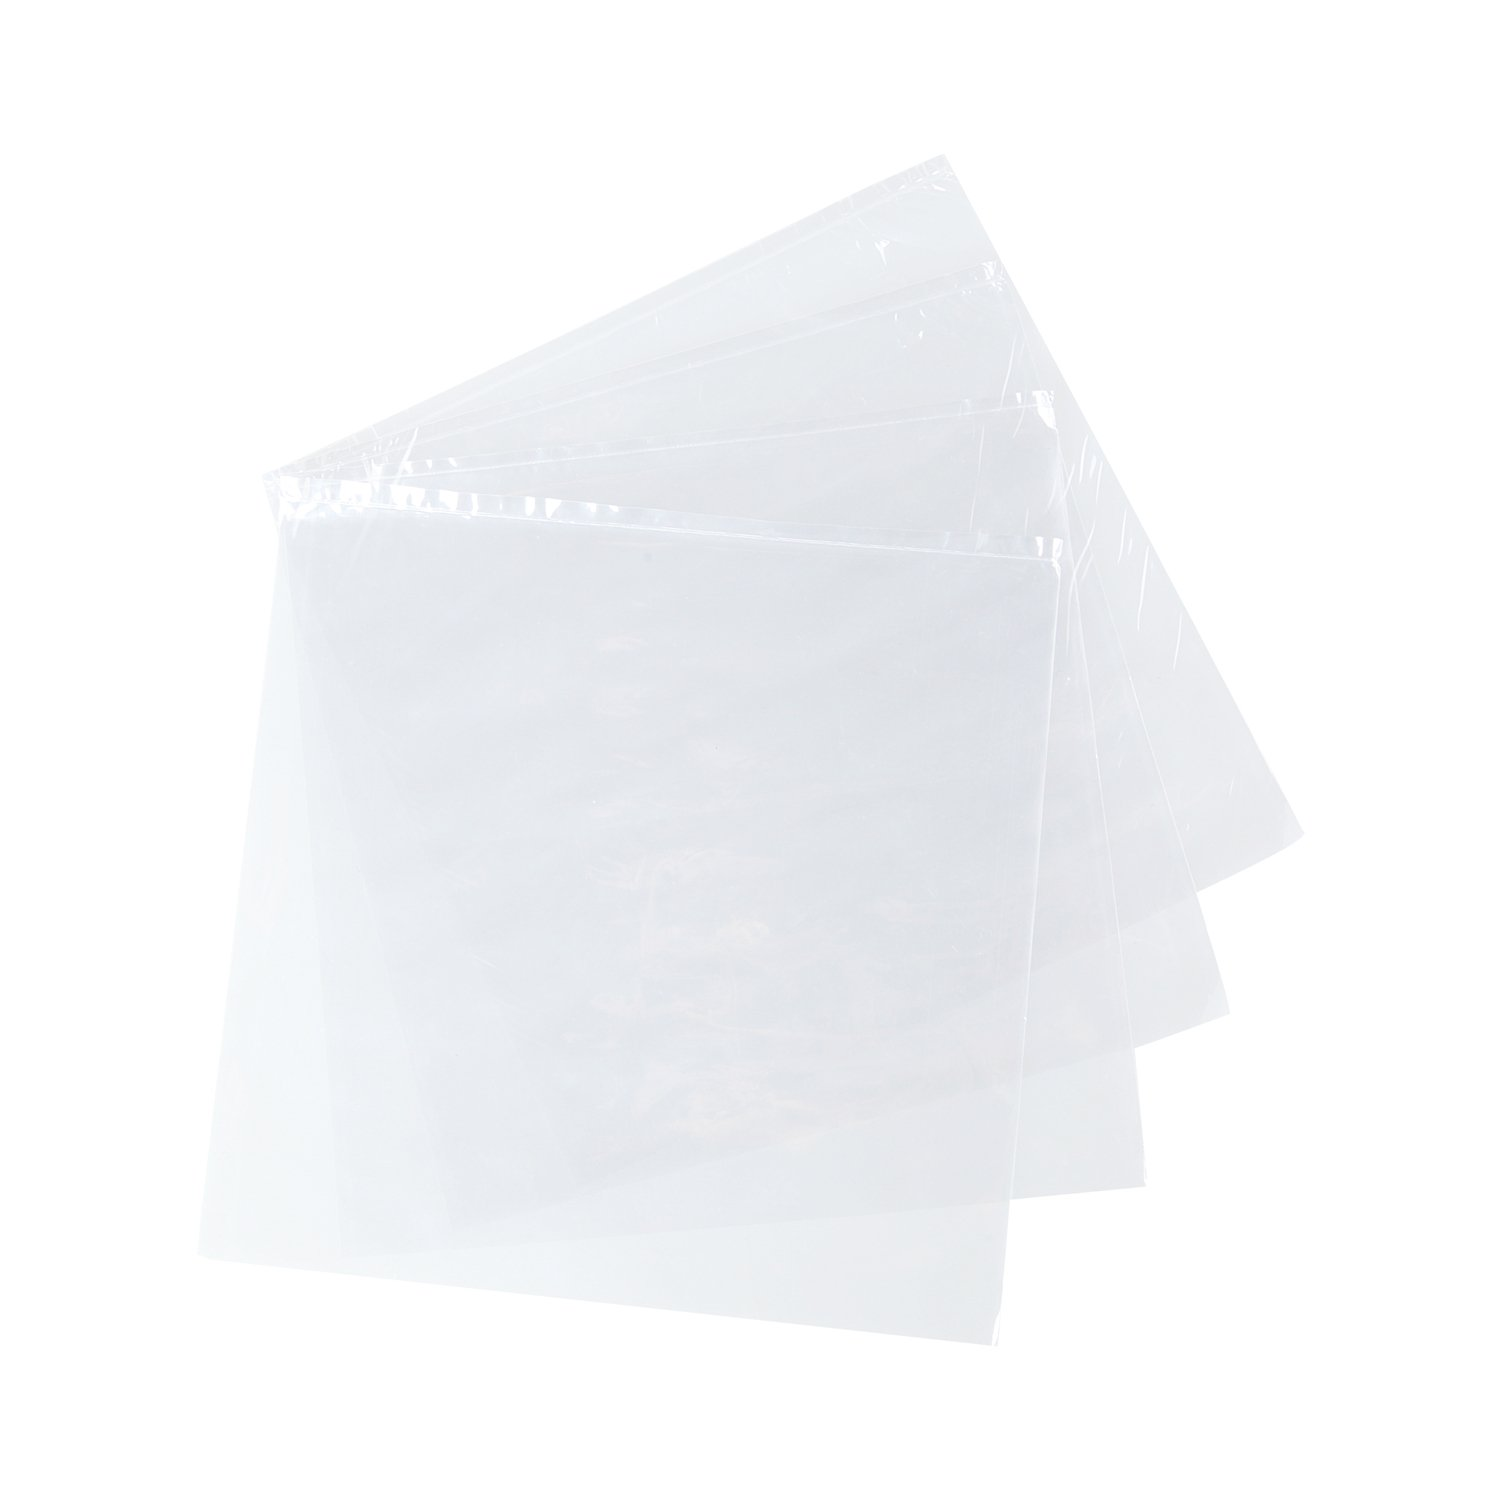 LazyMe 32x40 inch, Basket Cellophane Shrink Bags,  Shrink Wrap Bags Large, Clear, 5 Packs by LazyMe (Image #4)